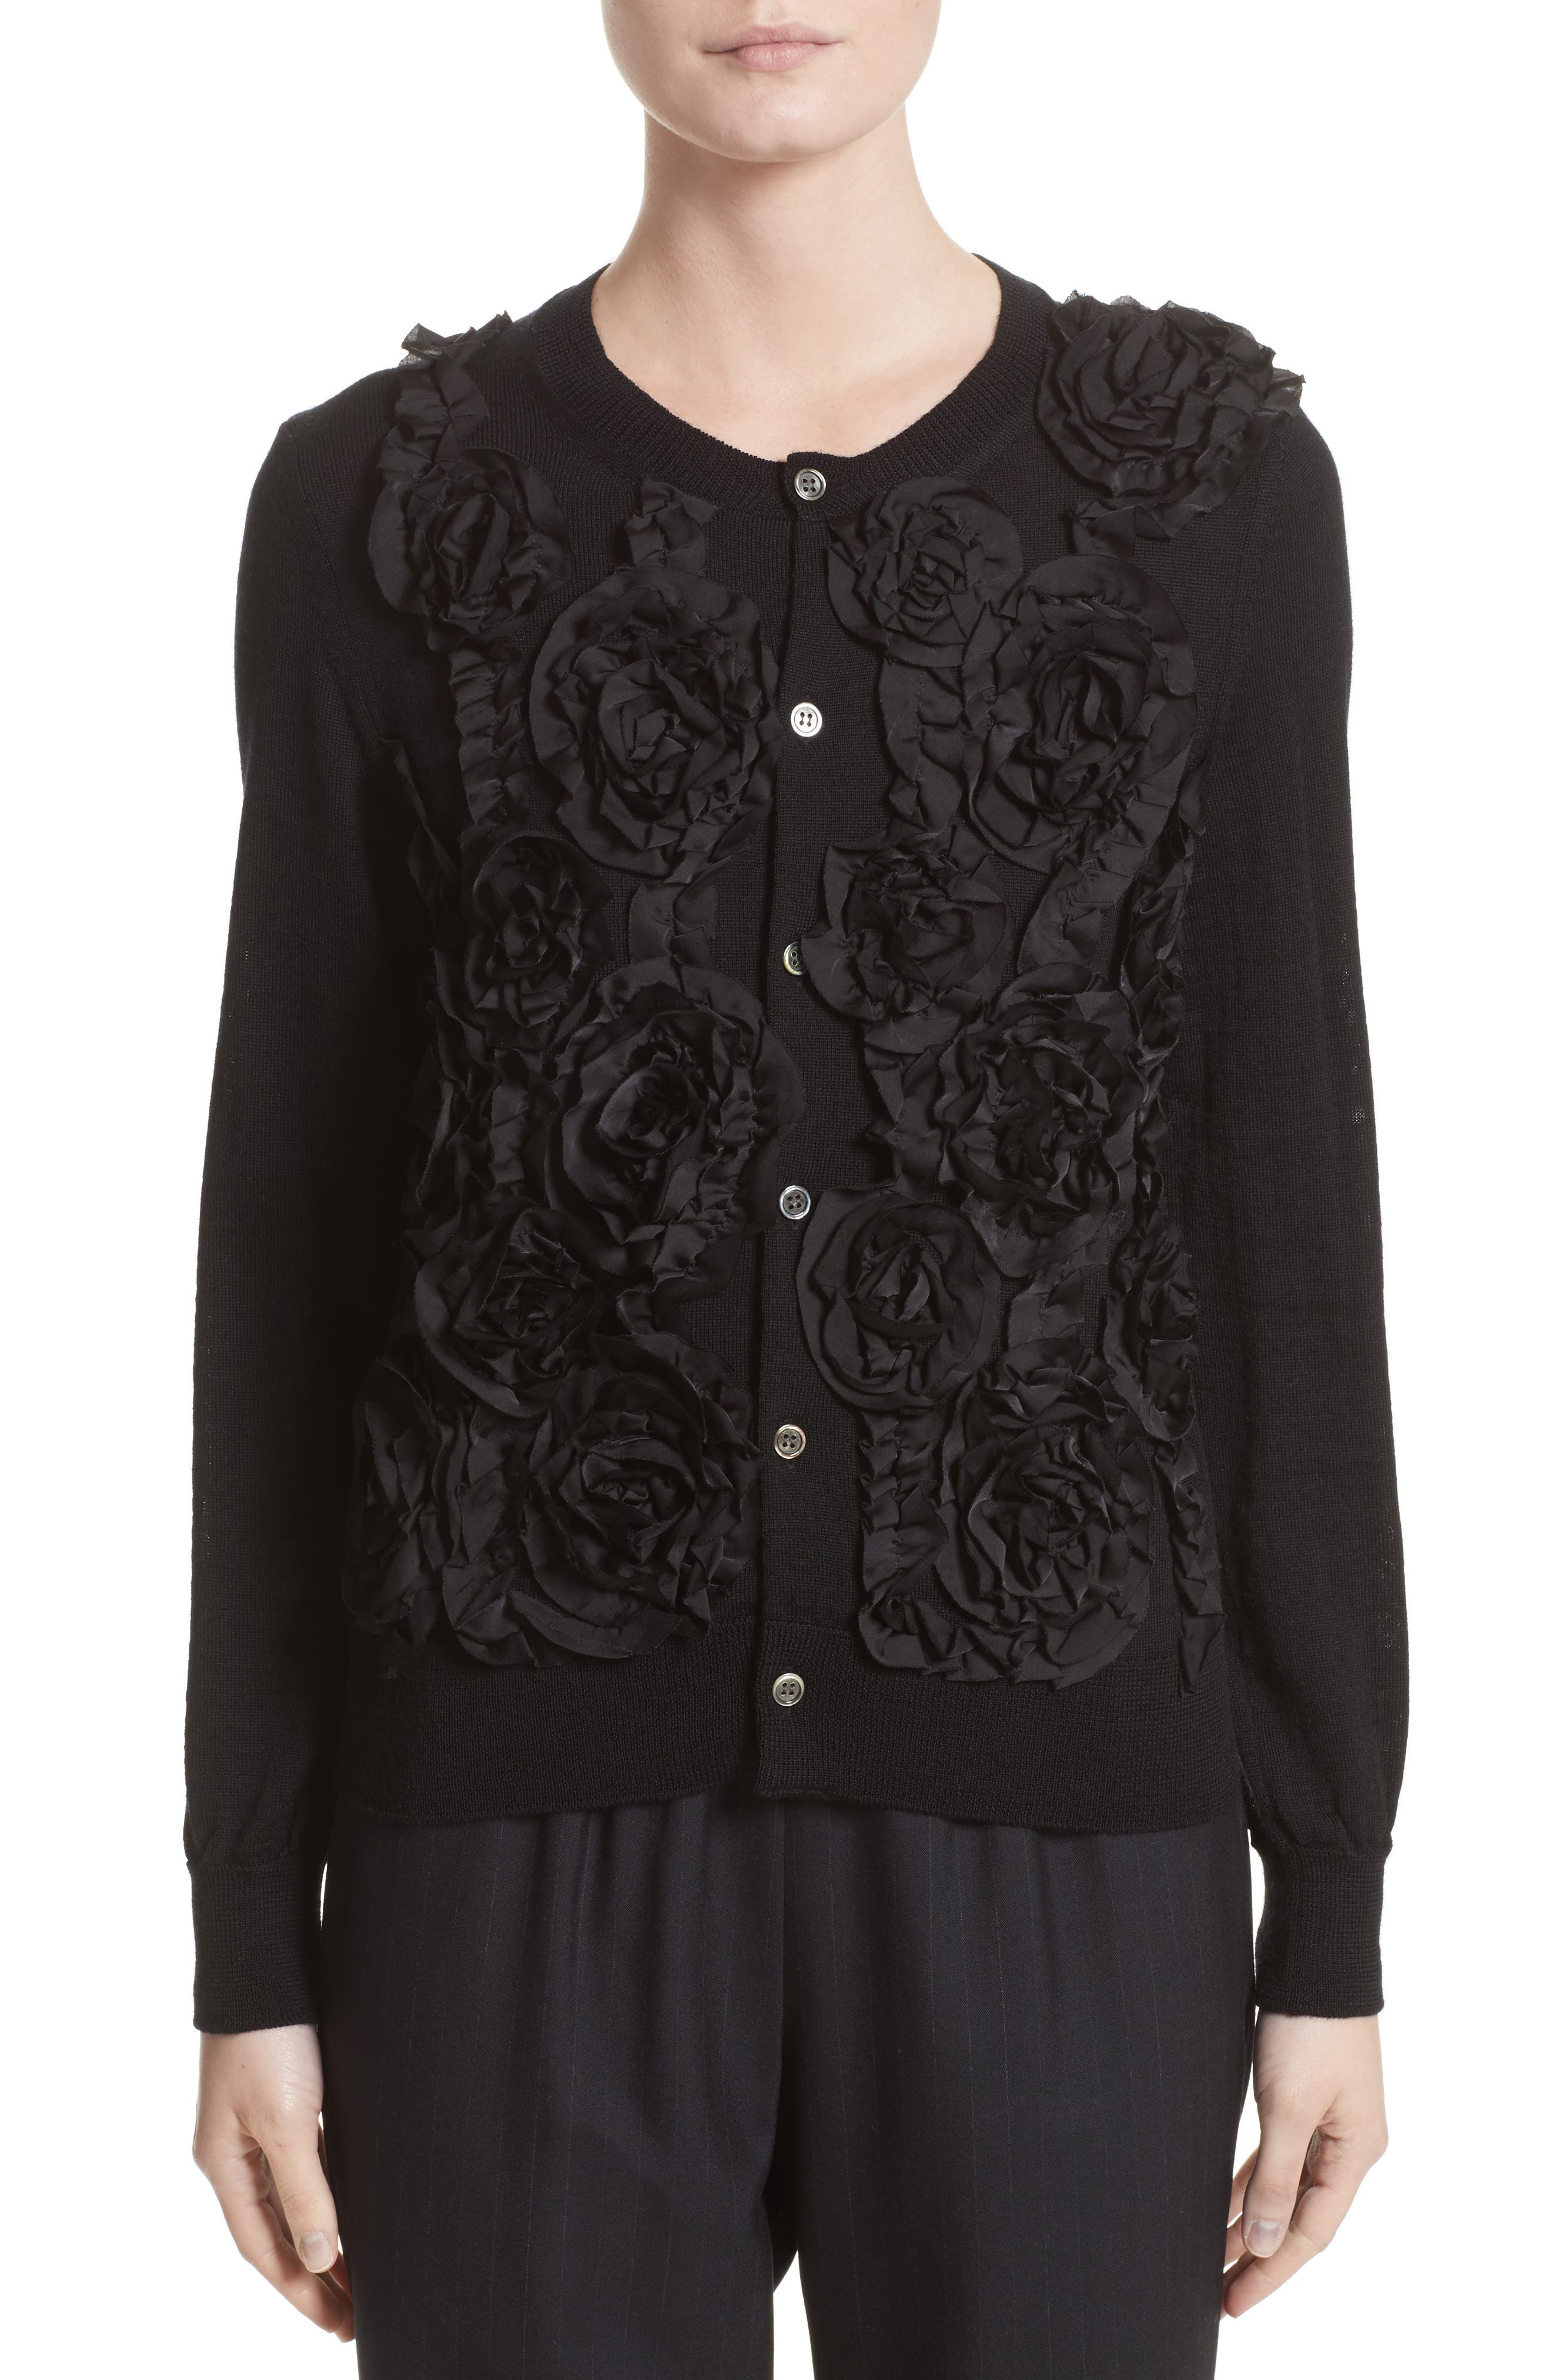 Alternate Image 1 Selected - Comme des Garçons Floral Appliqué Button Cardigan